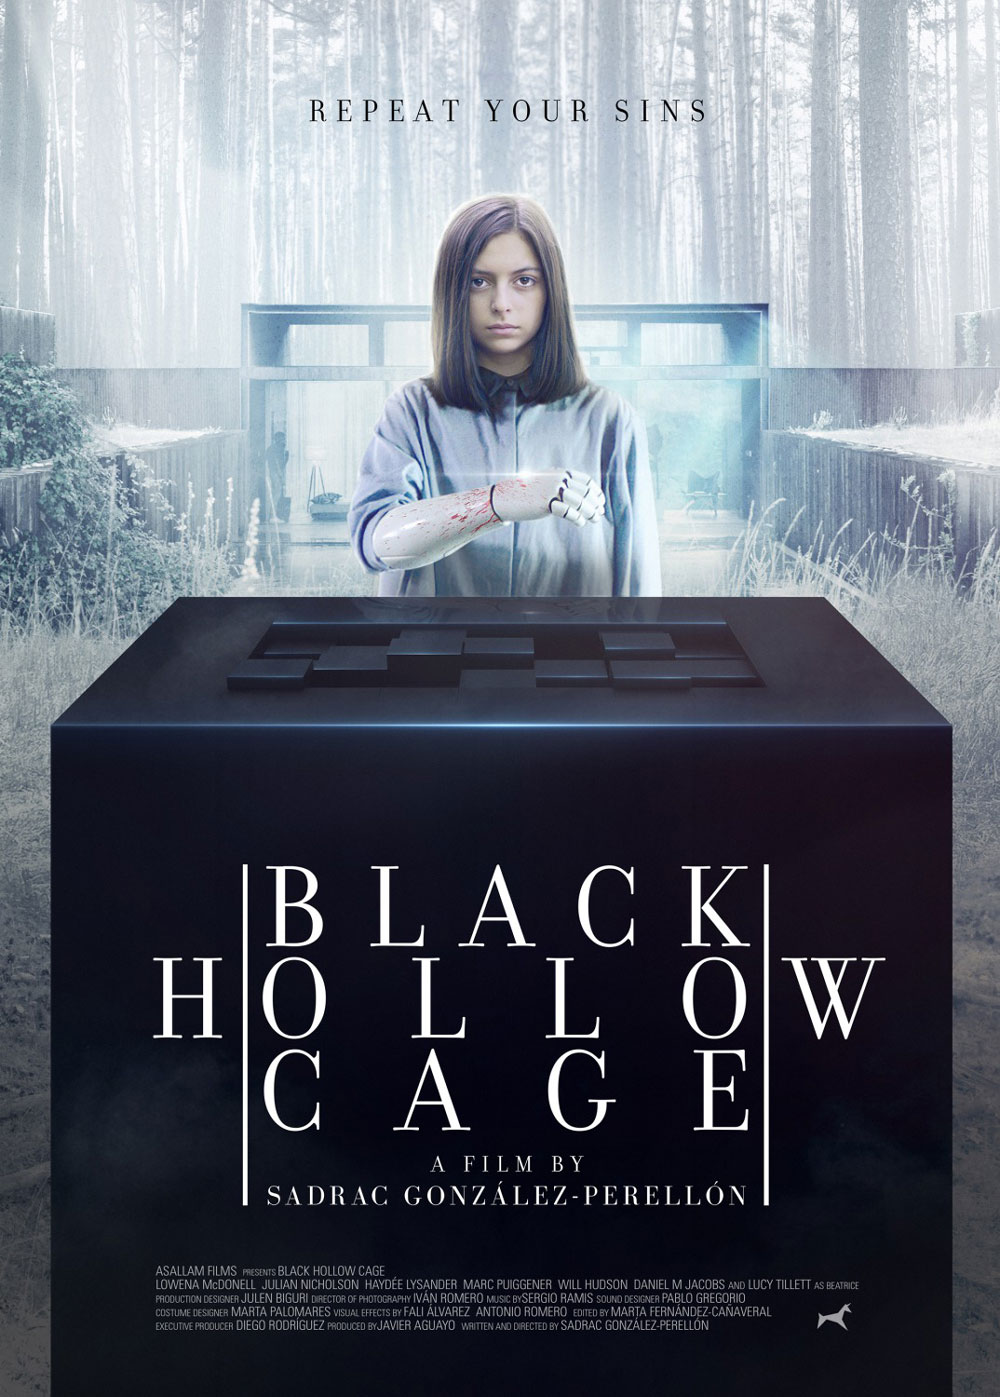 Black Hollor Cage poster